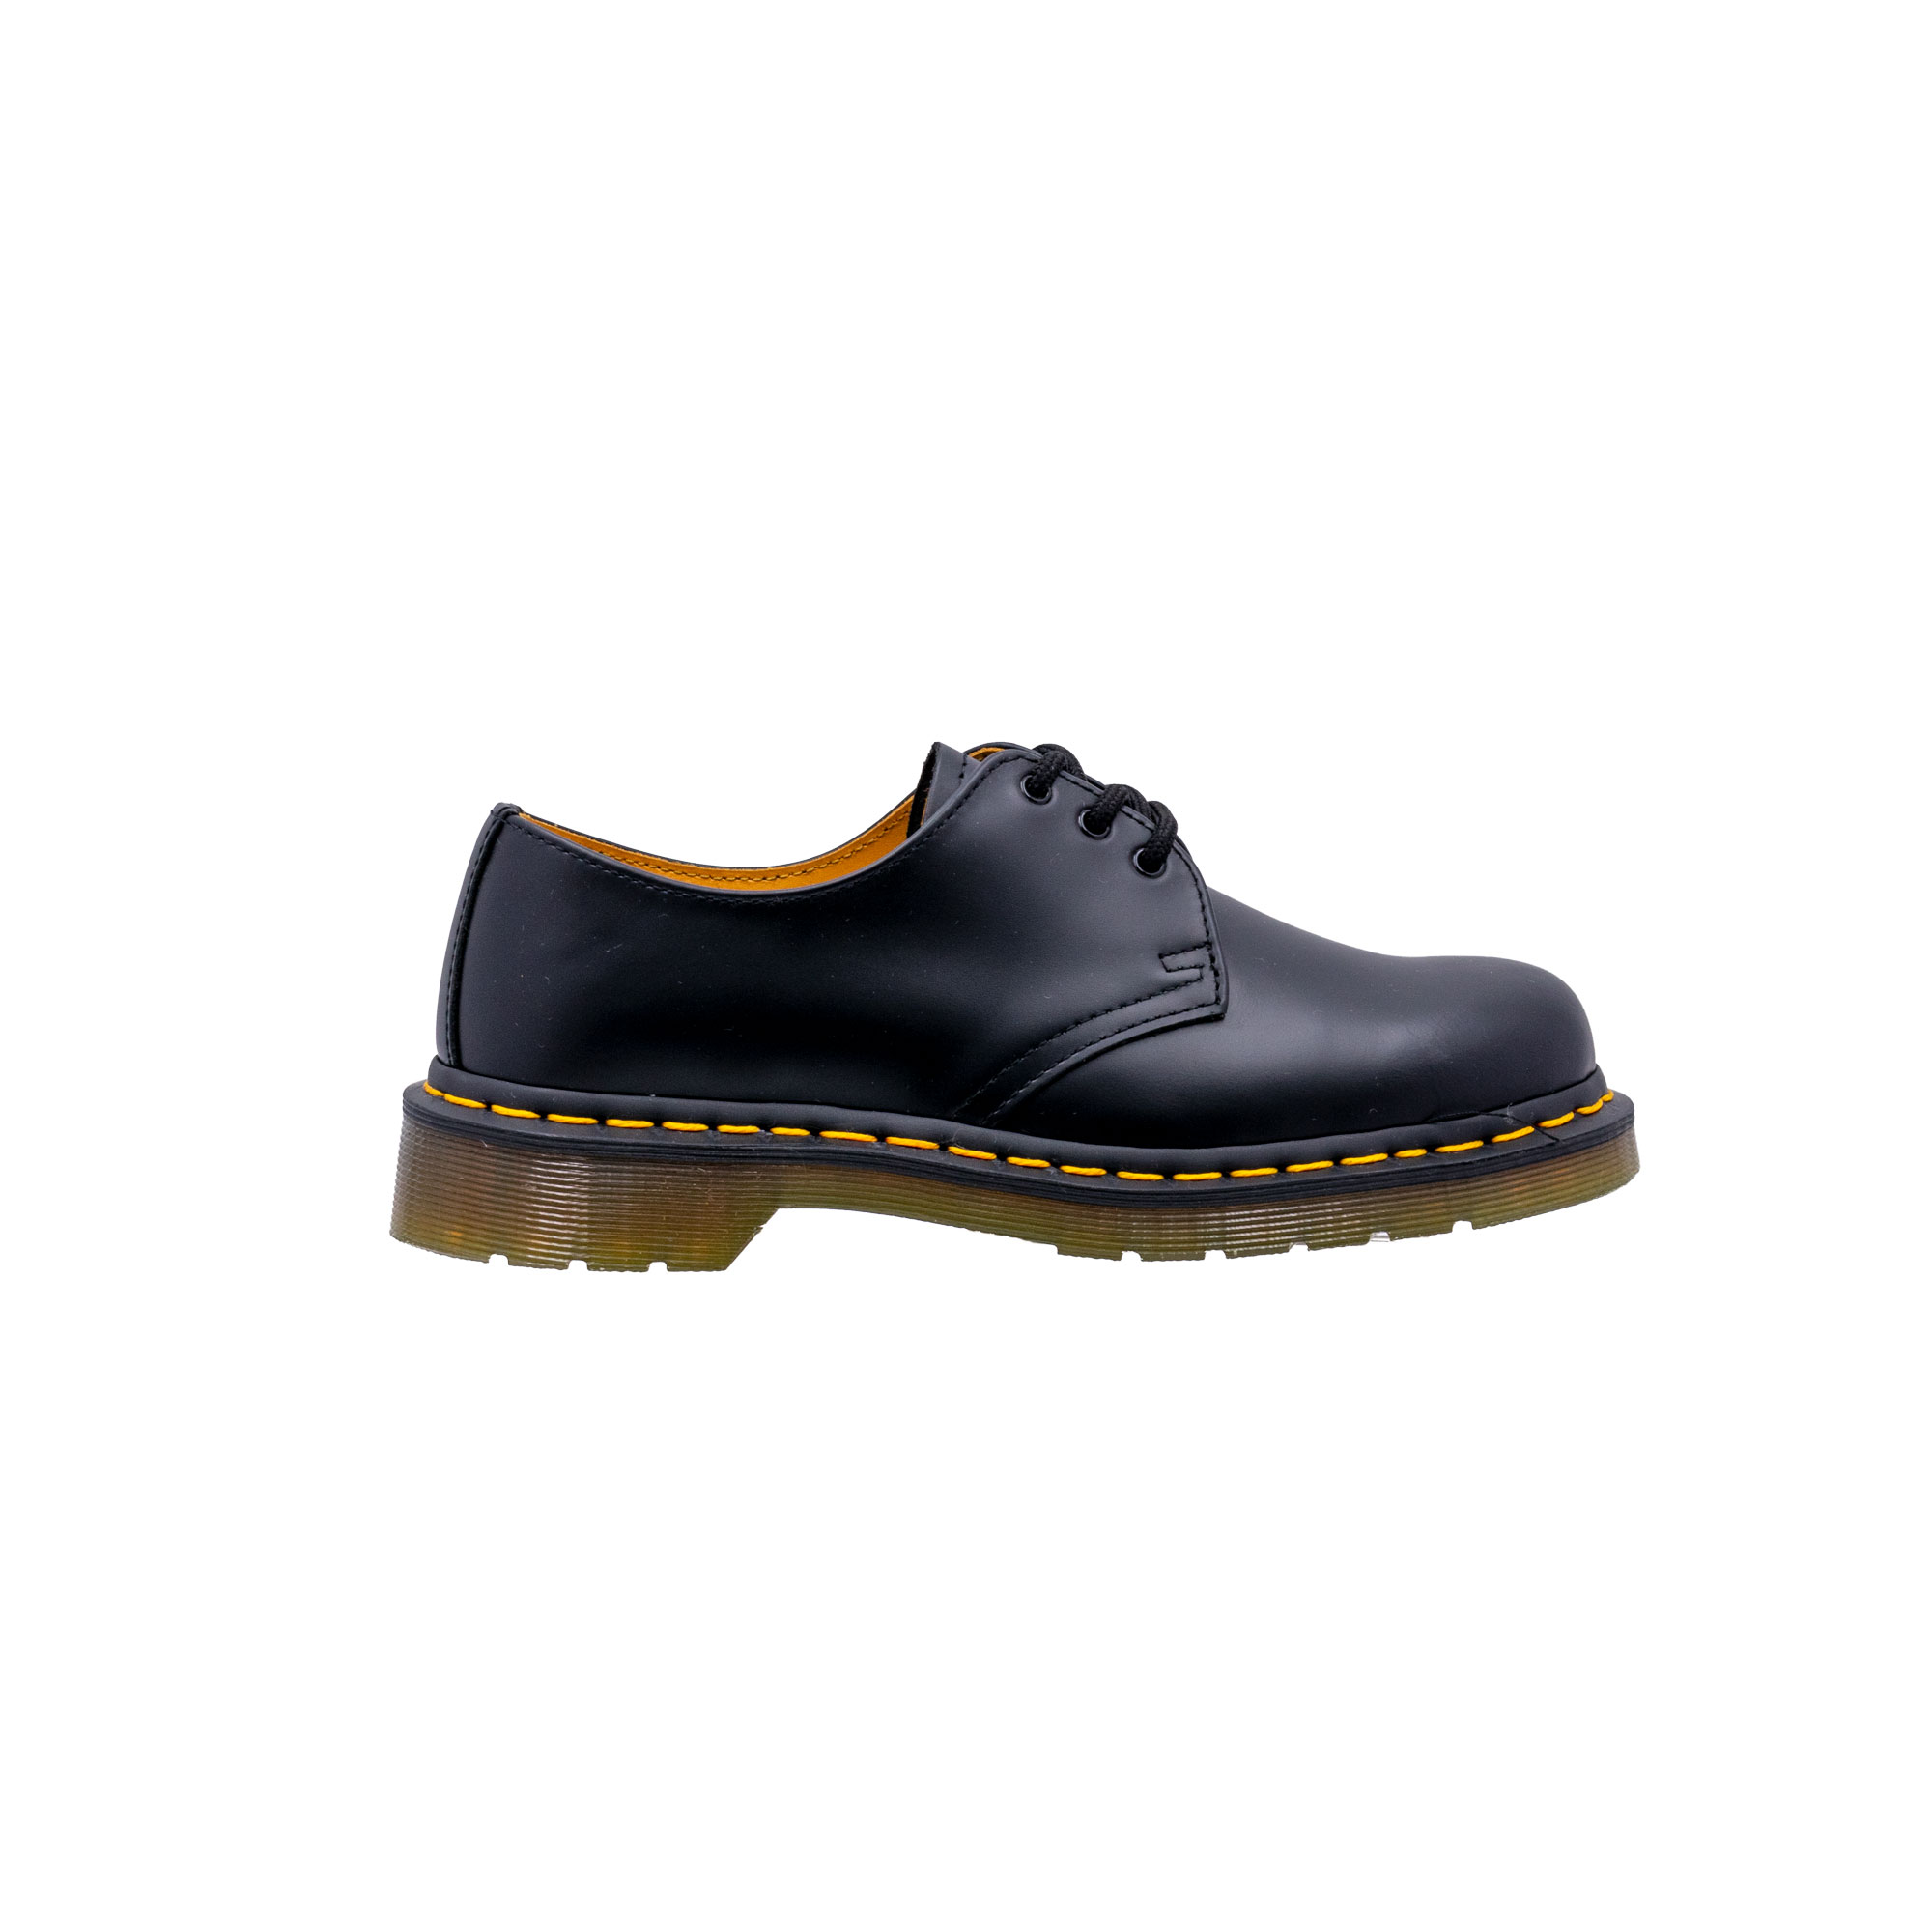 I20 Drmartens 146159 Smooth Black.jpg